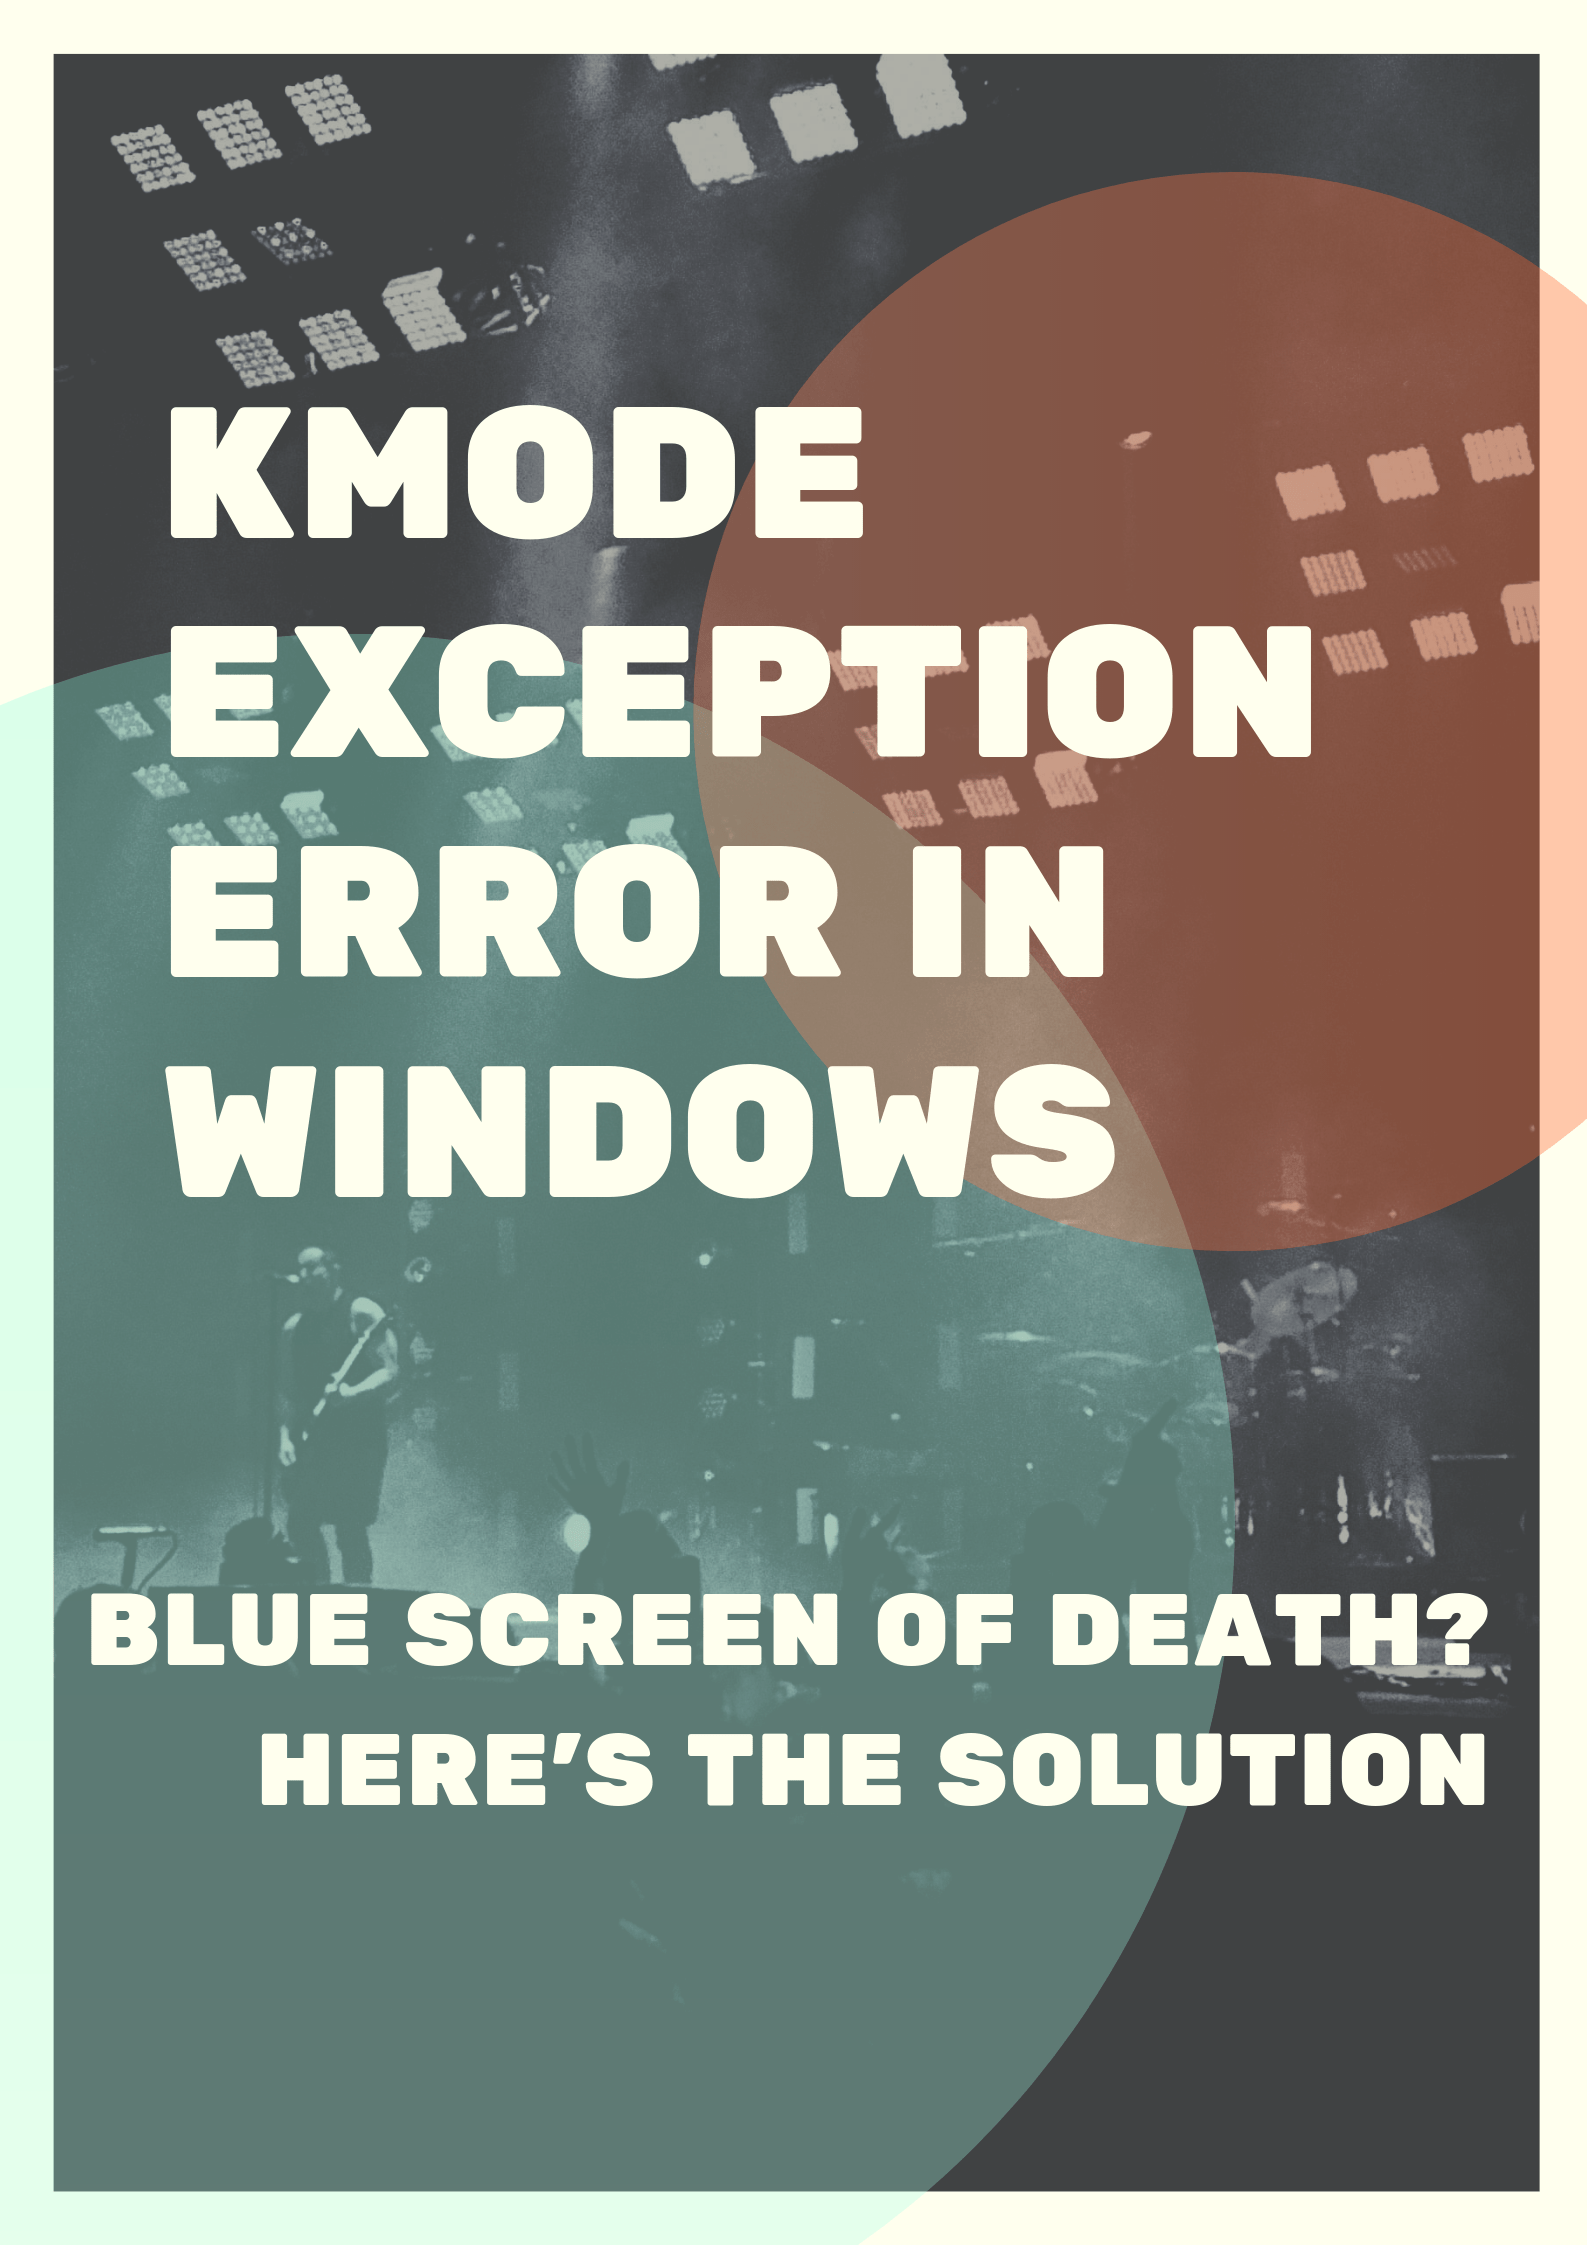 kmode-error-windows